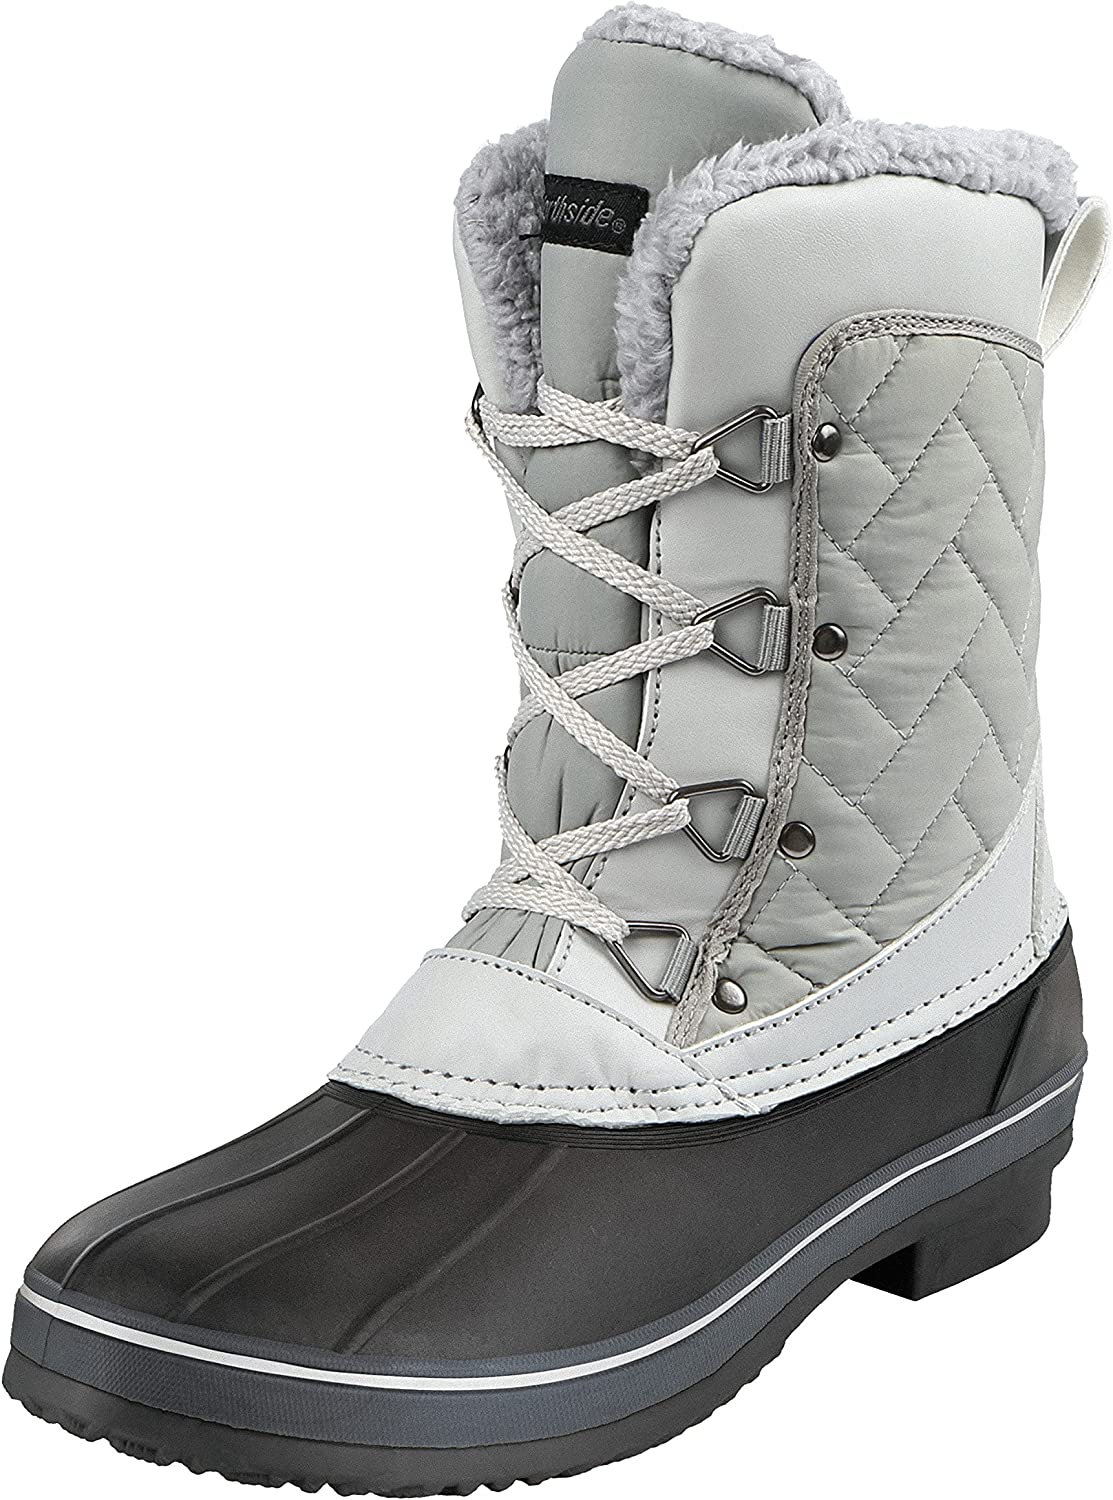 Northside Women's Now on sale Modesto Snow Max 79% OFF Boot